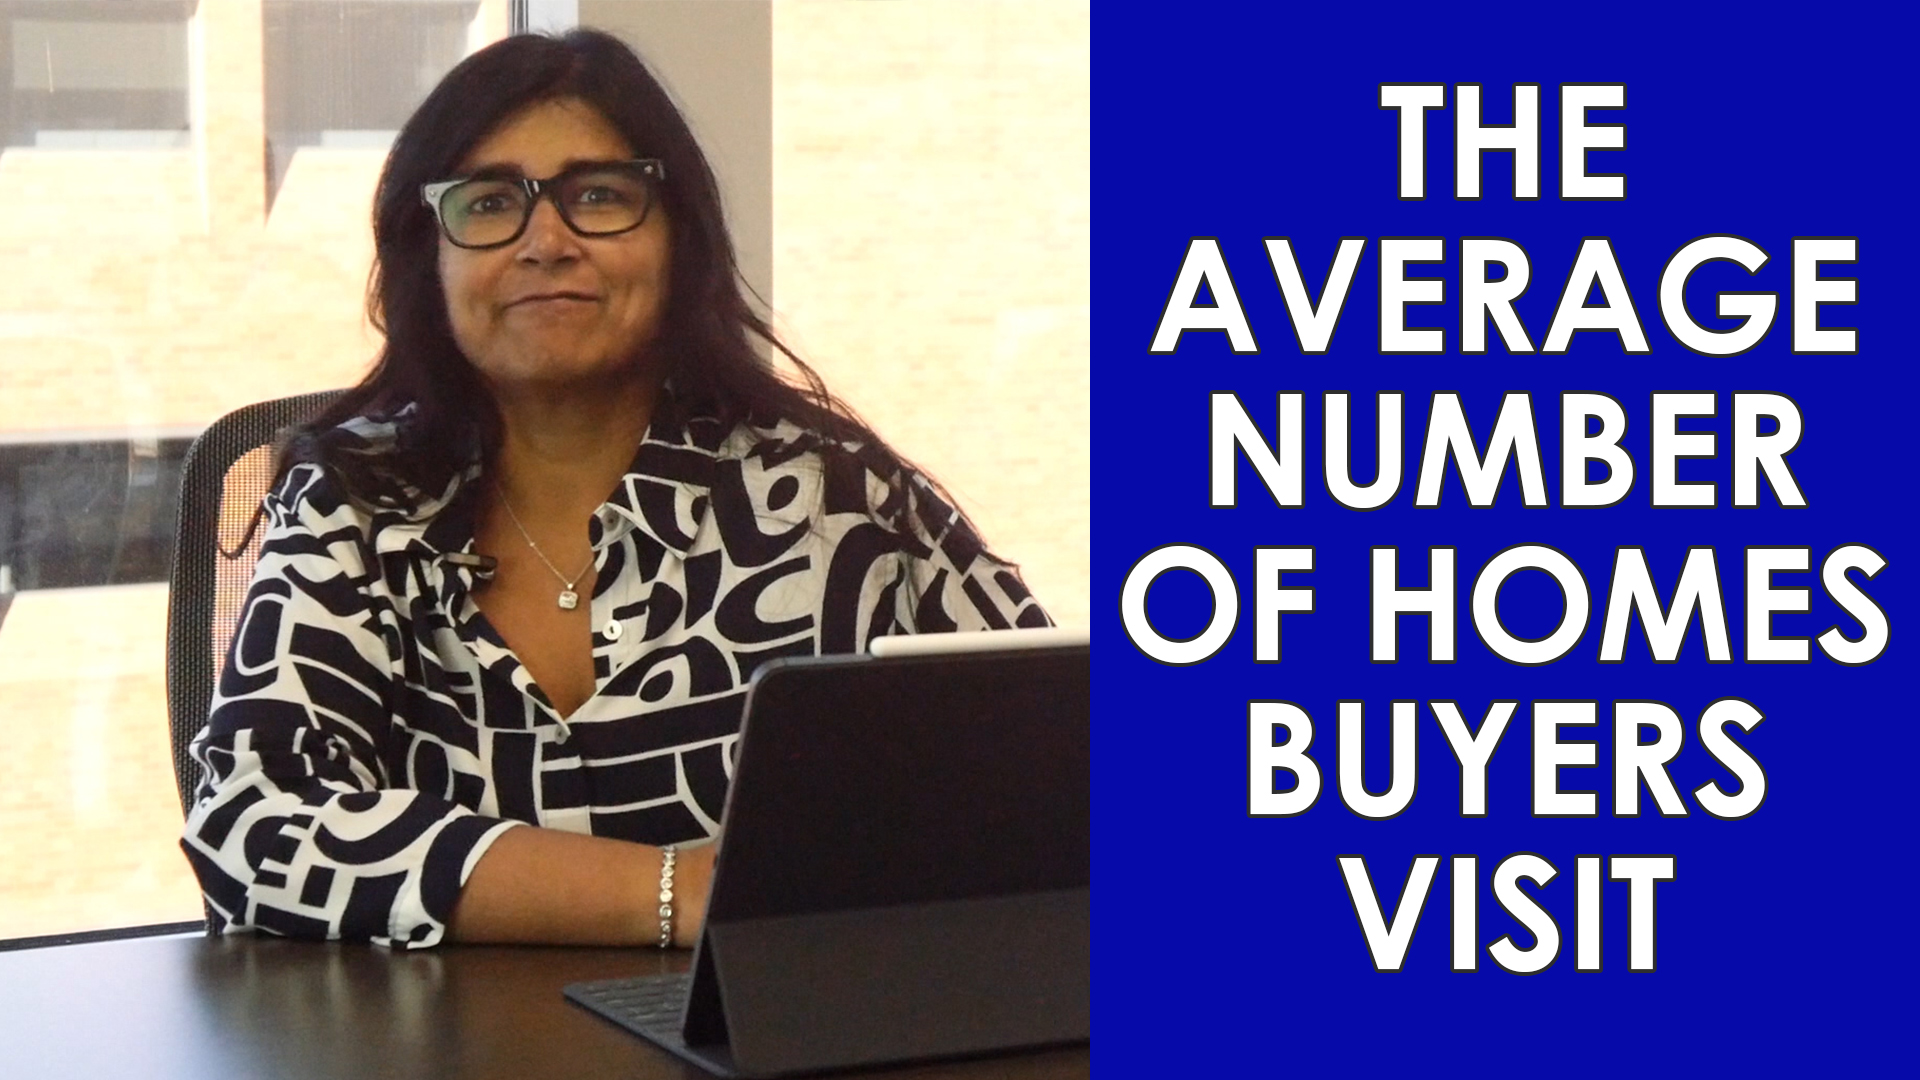 How Many Homes Do Buyers Look At Before Buying One?